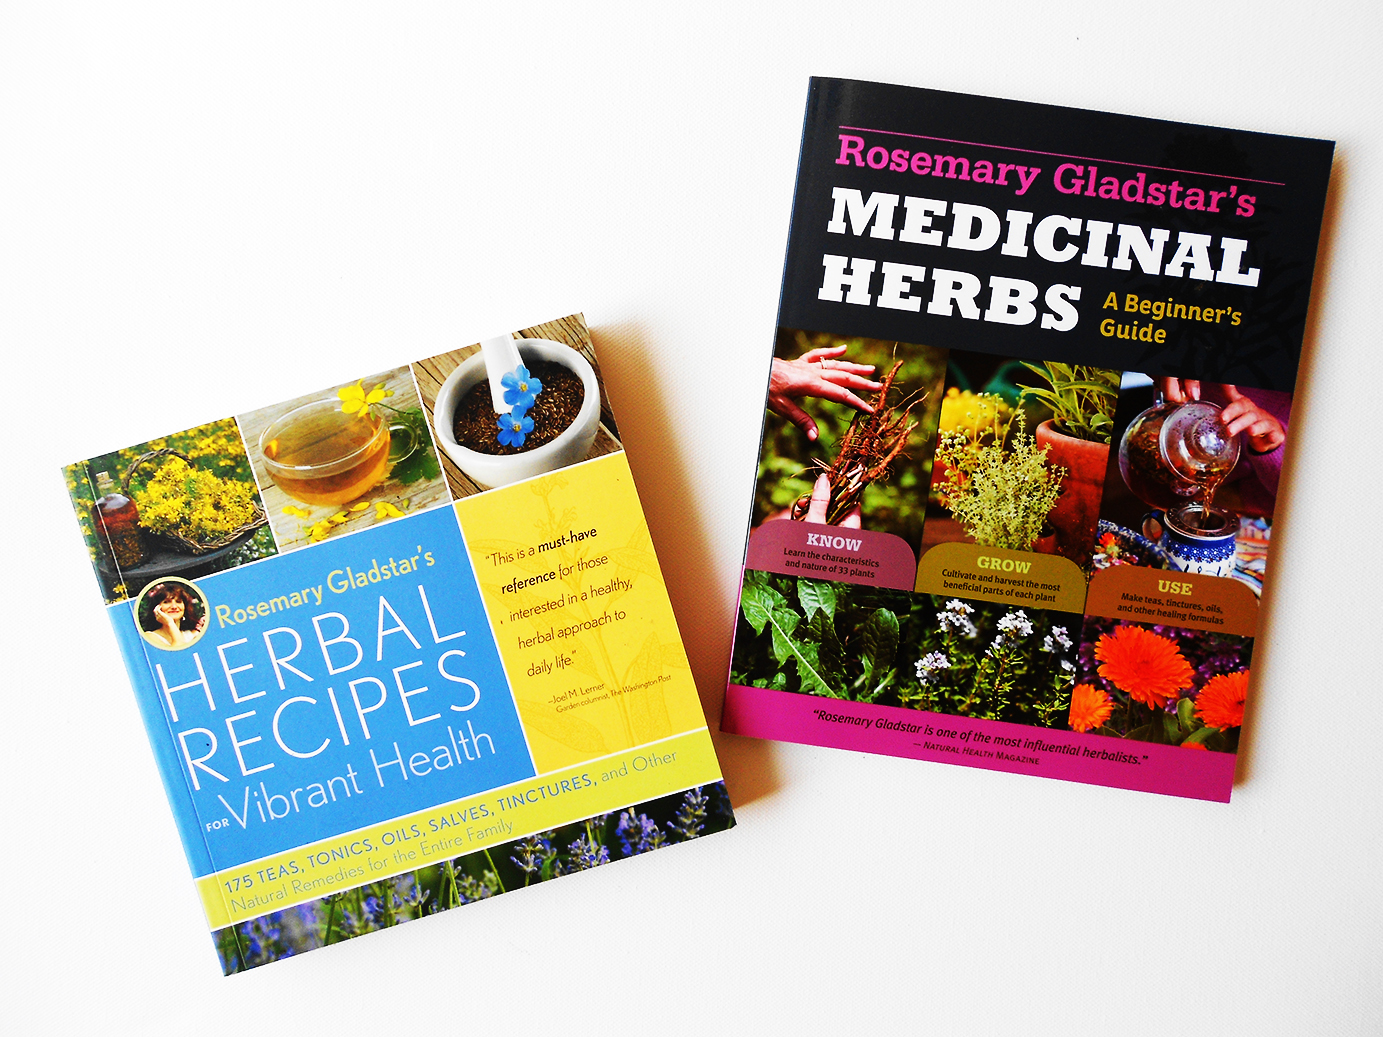 Medicinal Herbs A Beginner's Guide & Herbal Recipes for Vibrant Health by Rosemary Gladstar